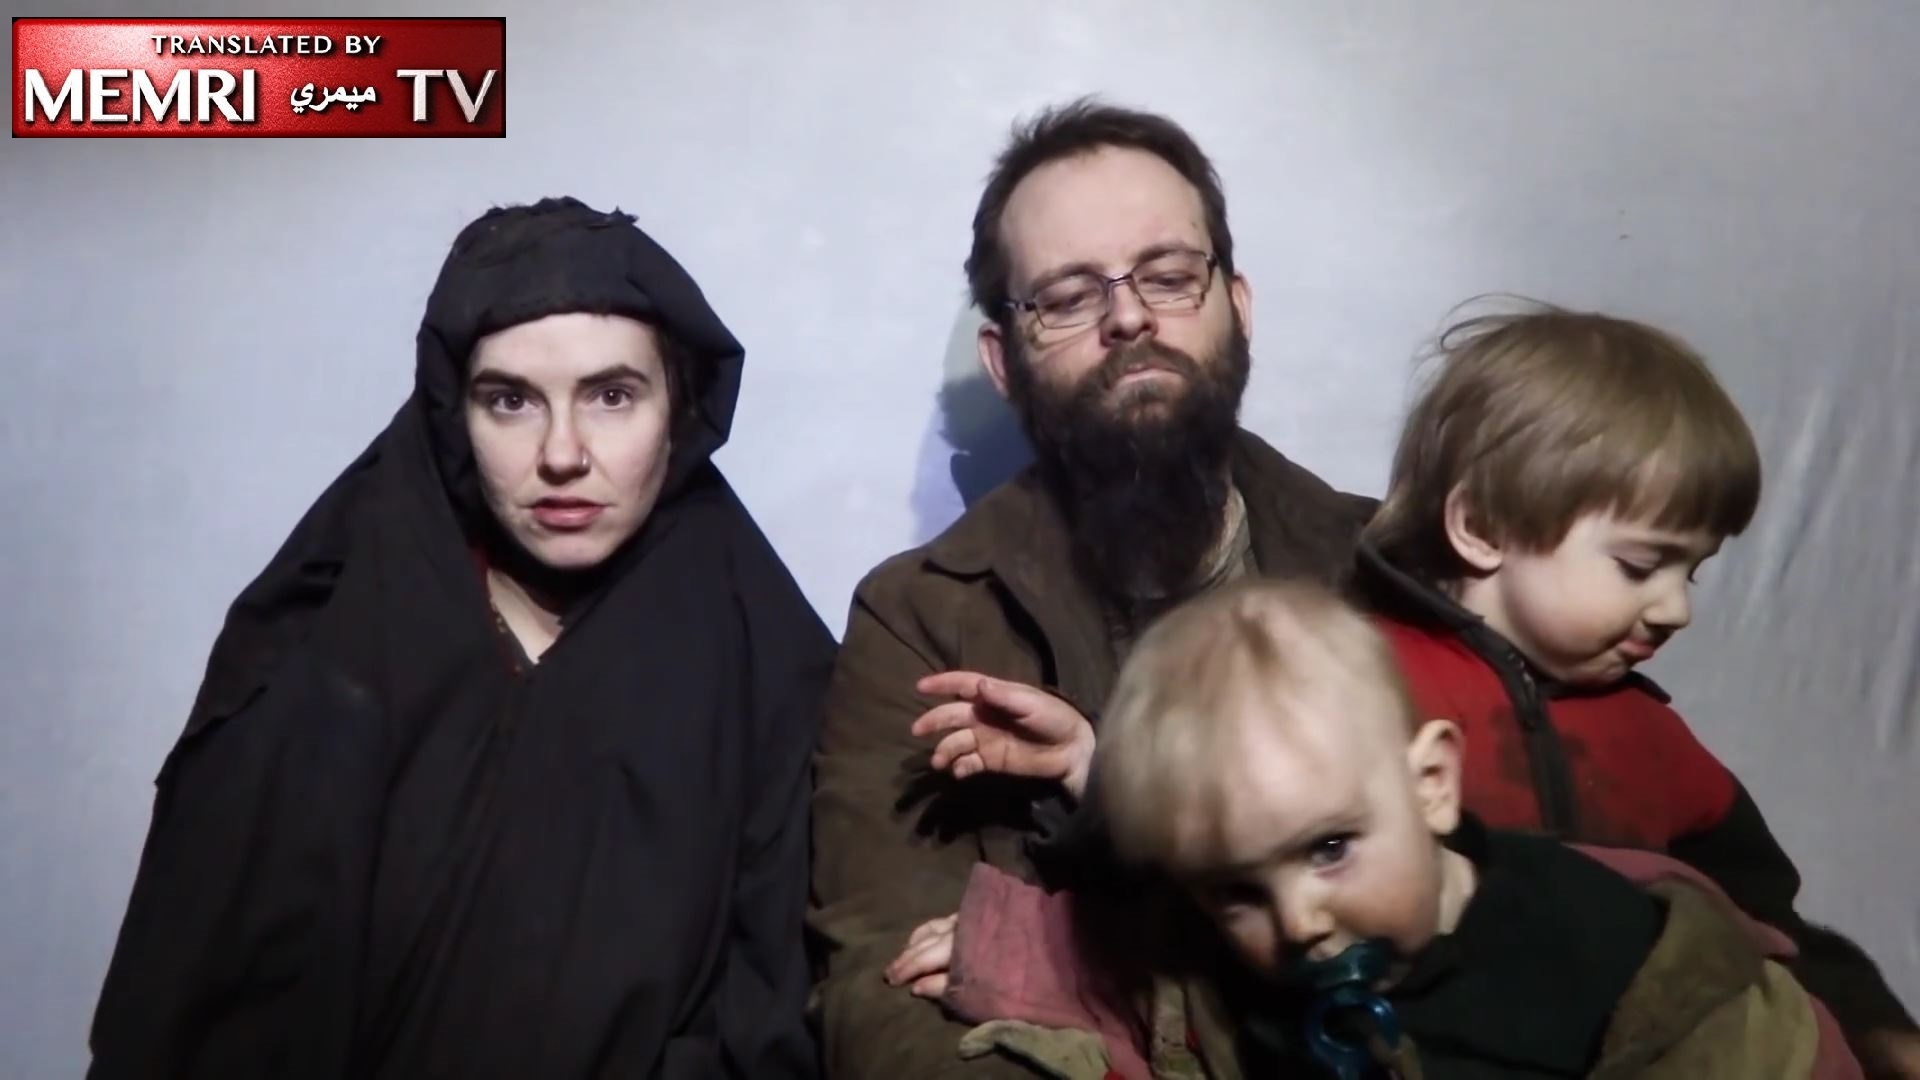 Taliban Video of American Hostage Caitlin Coleman, Her Canadian Husband and Their Two Children: We Find Ourselves in a